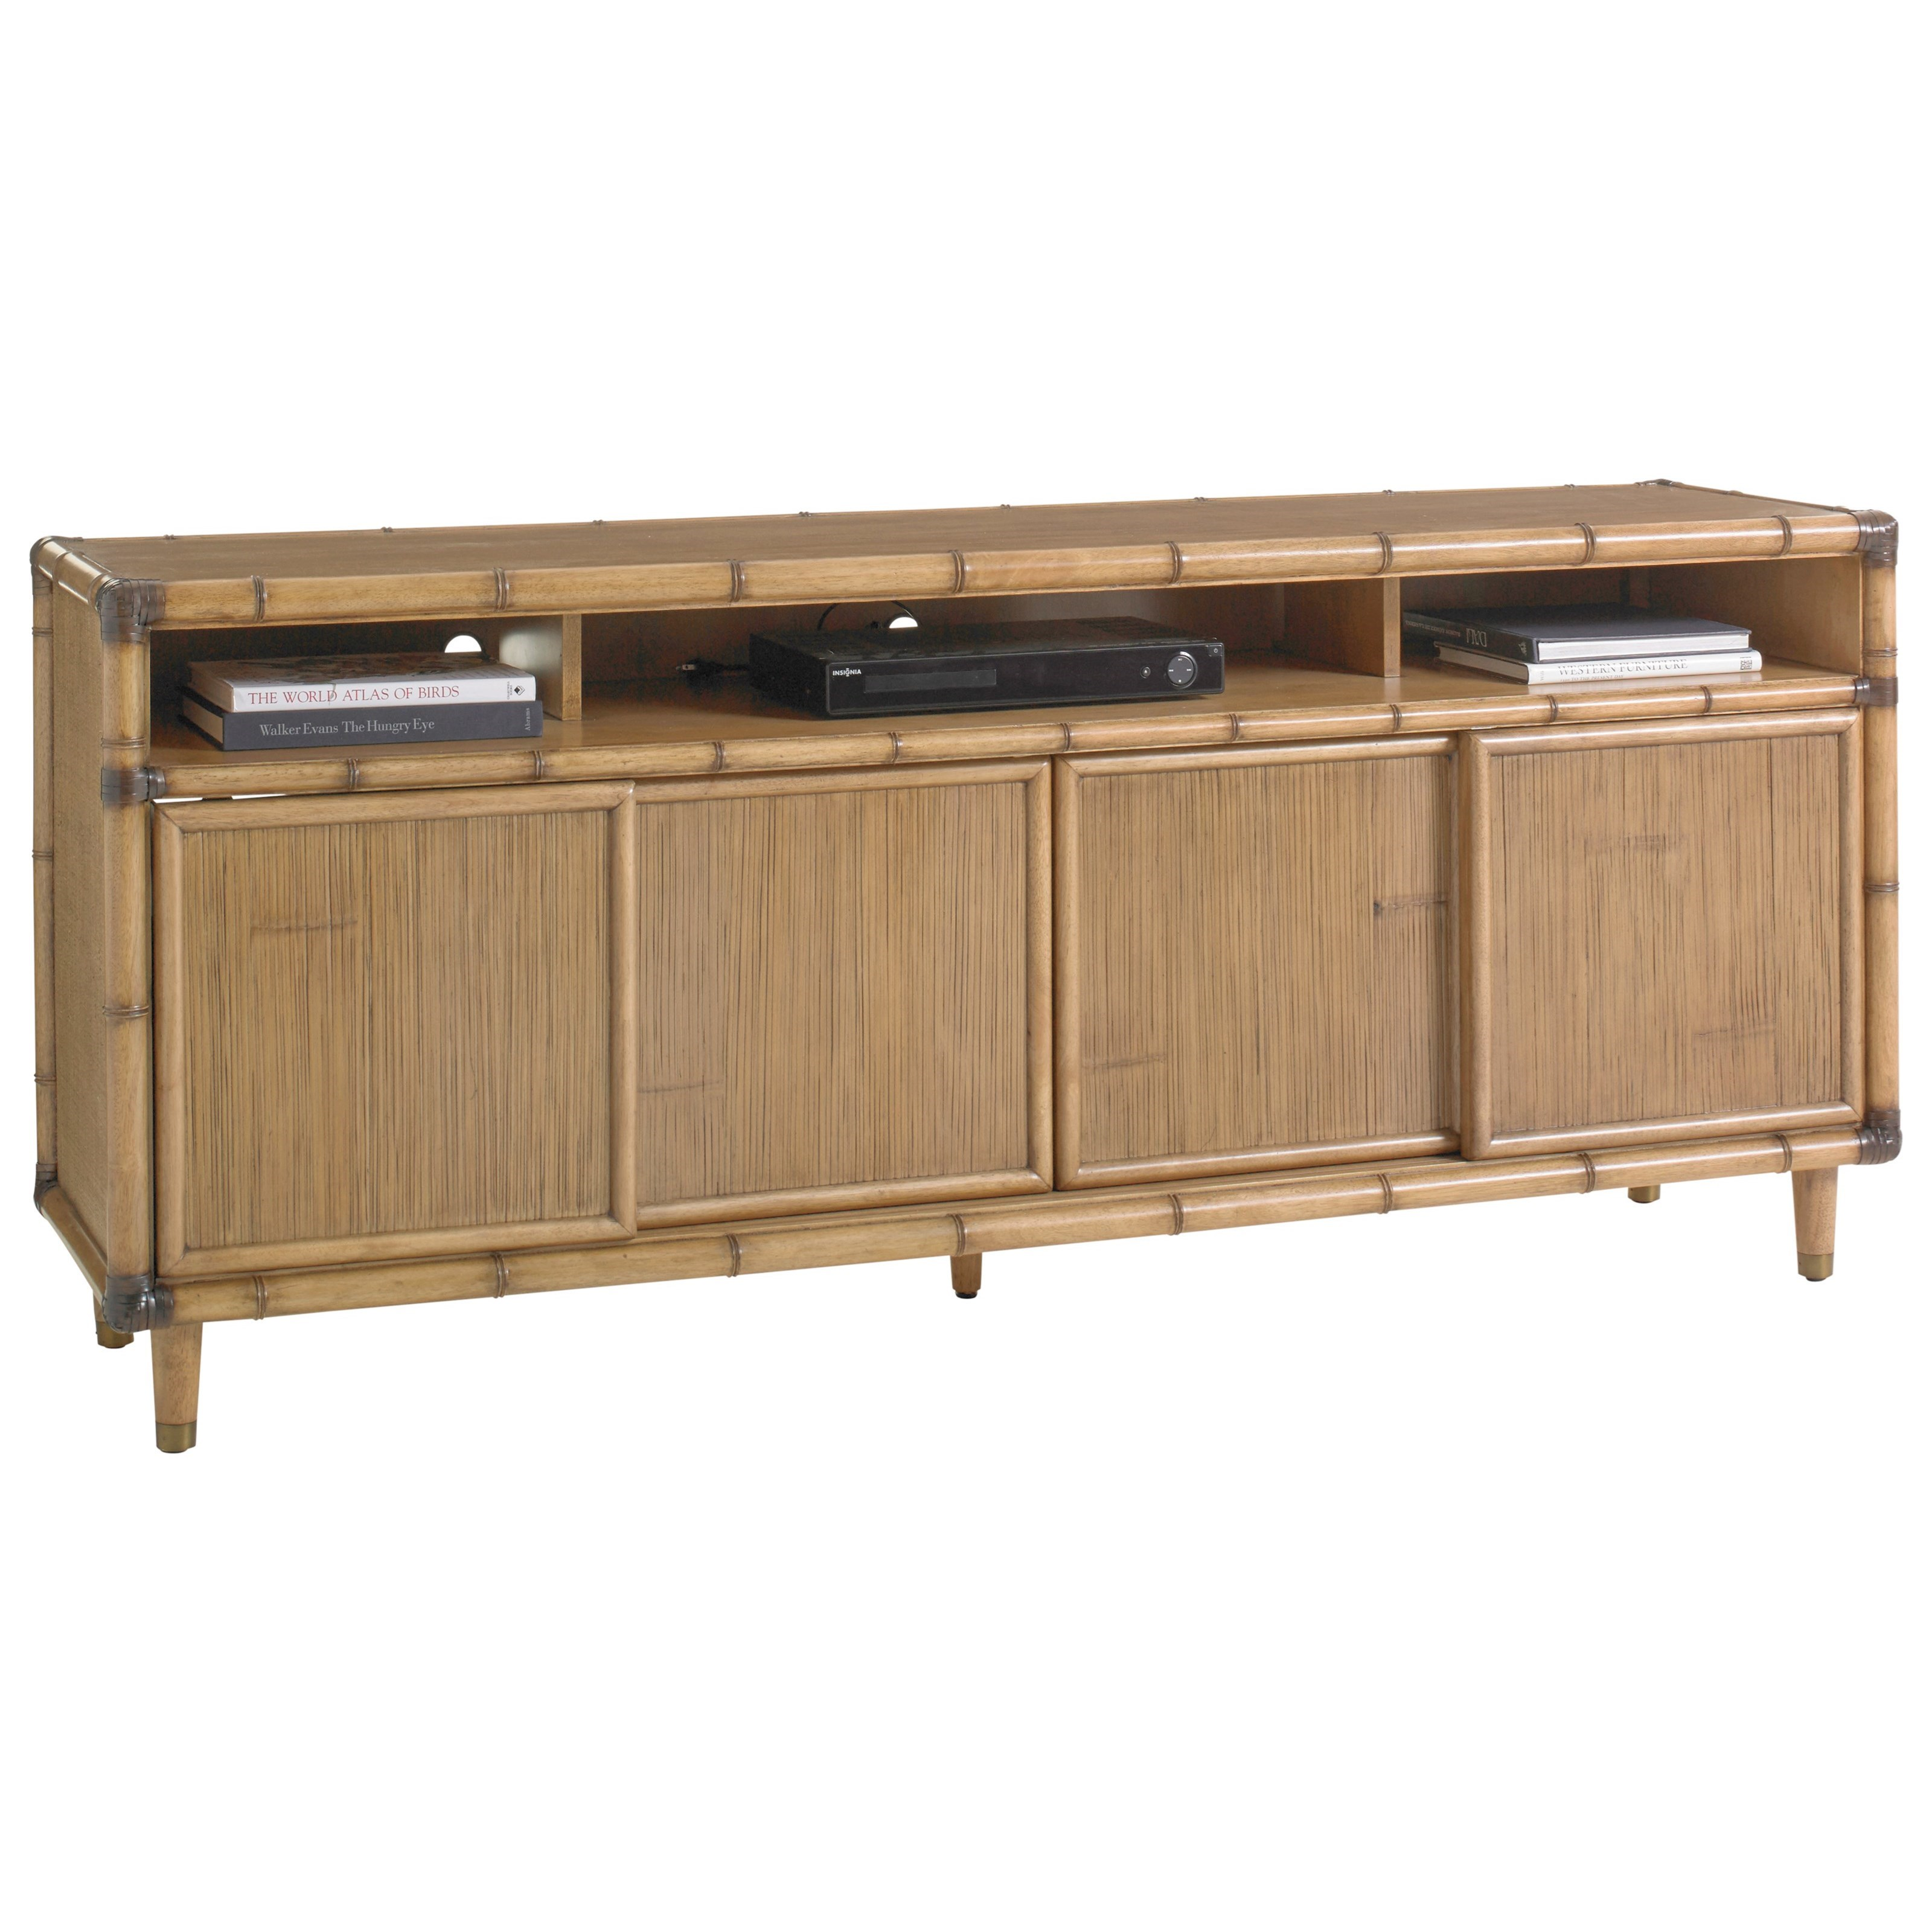 Twin Palms Sea Crest Media Console by Tommy Bahama Home at Baer's Furniture